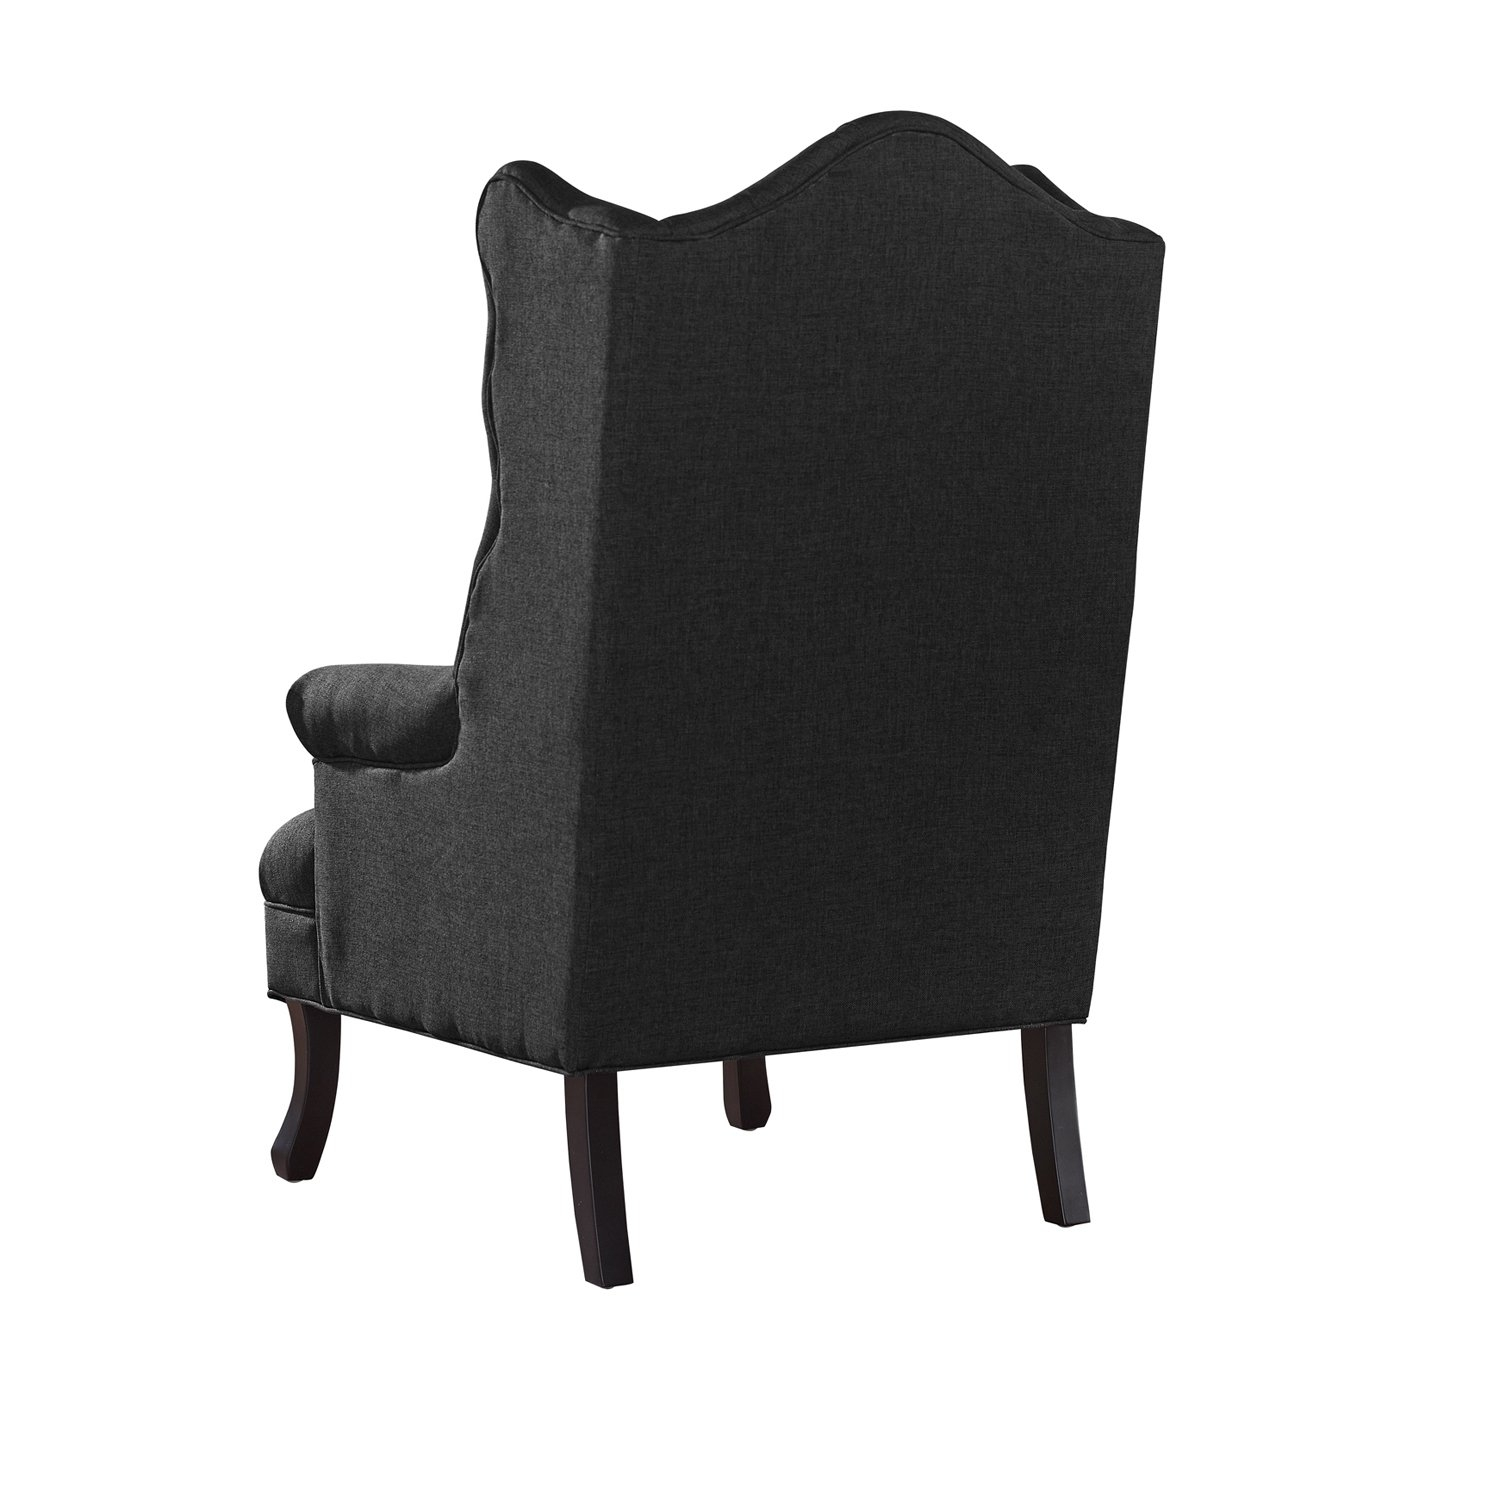 Norwood Upholstered Hostess Chairs Throughout Most Popular Shop Baxton Studio Norwood Grey Fabric Upholstered Wing Back Accent (View 7 of 20)